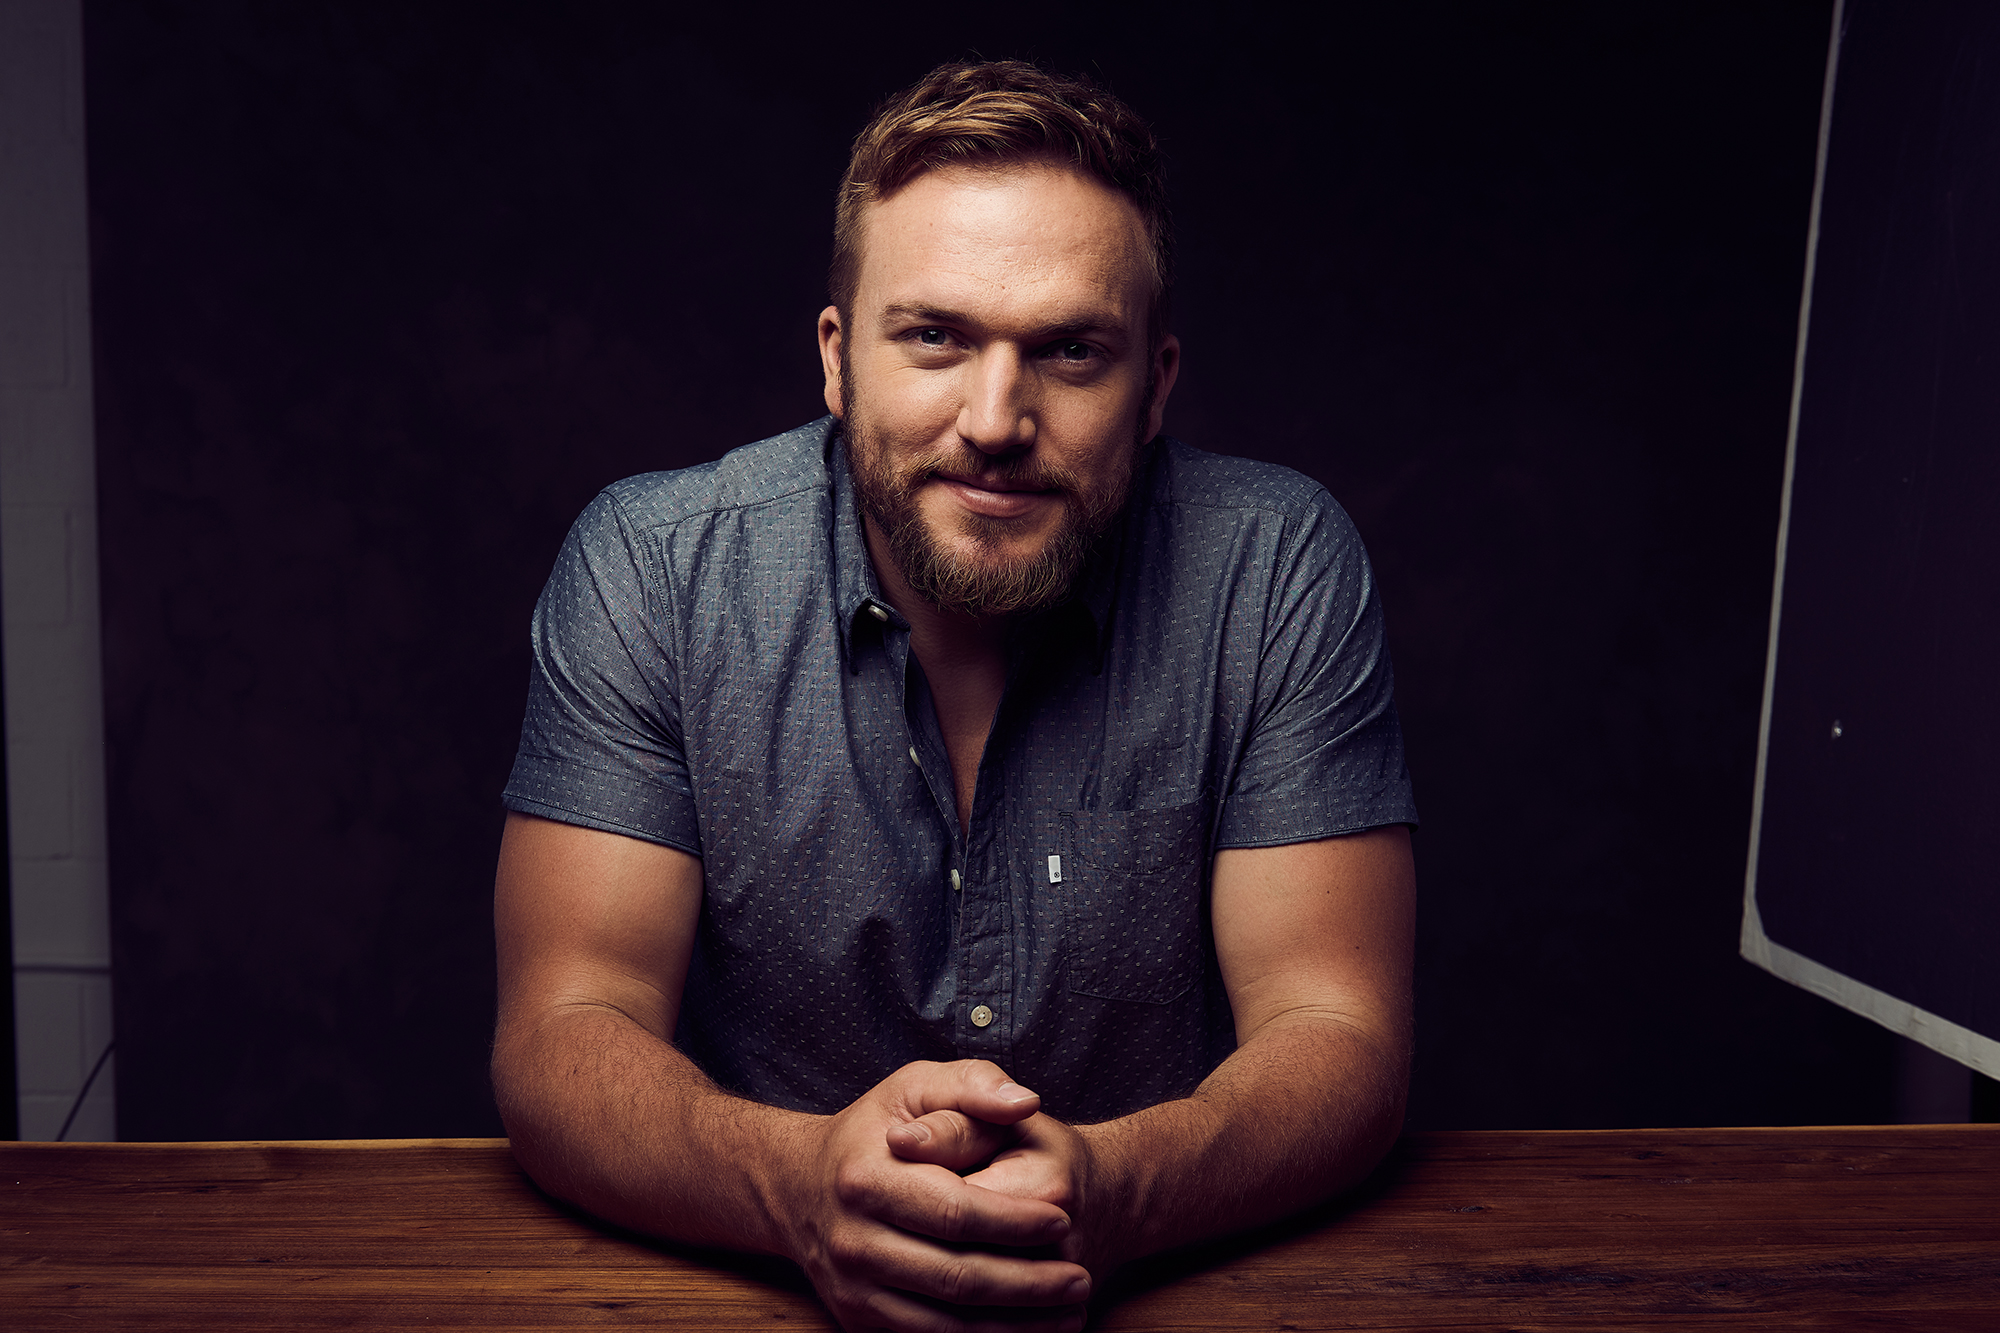 Logan Mize Phone number, Email Id, Fanmail, Instagram, Tiktok, and Contact Details